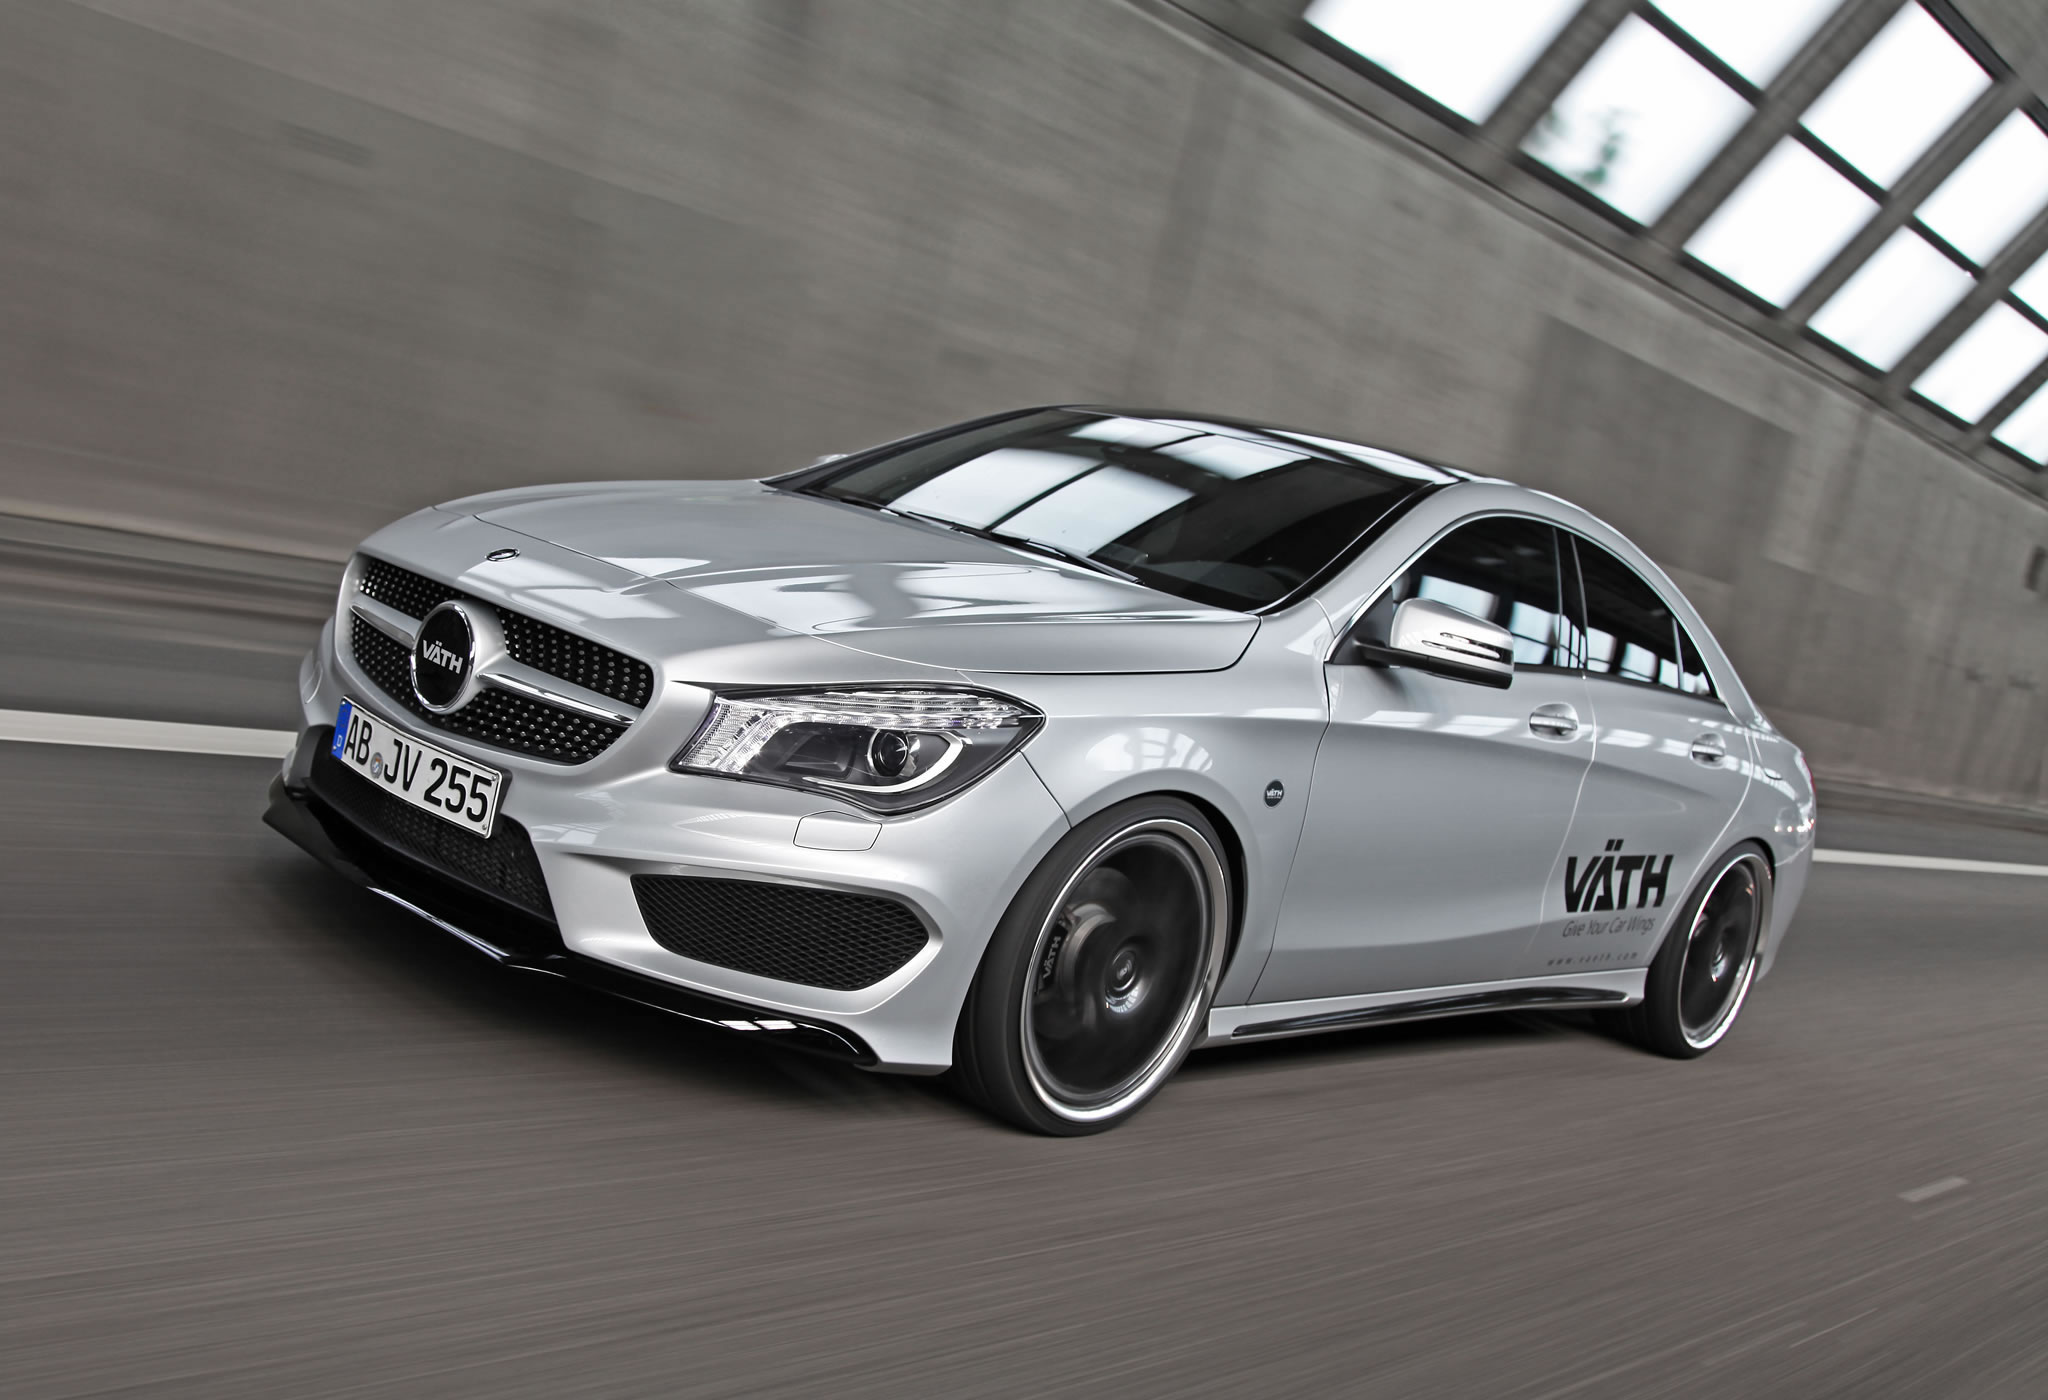 2014 mercedes benz cla250 by vaeth front photo polar